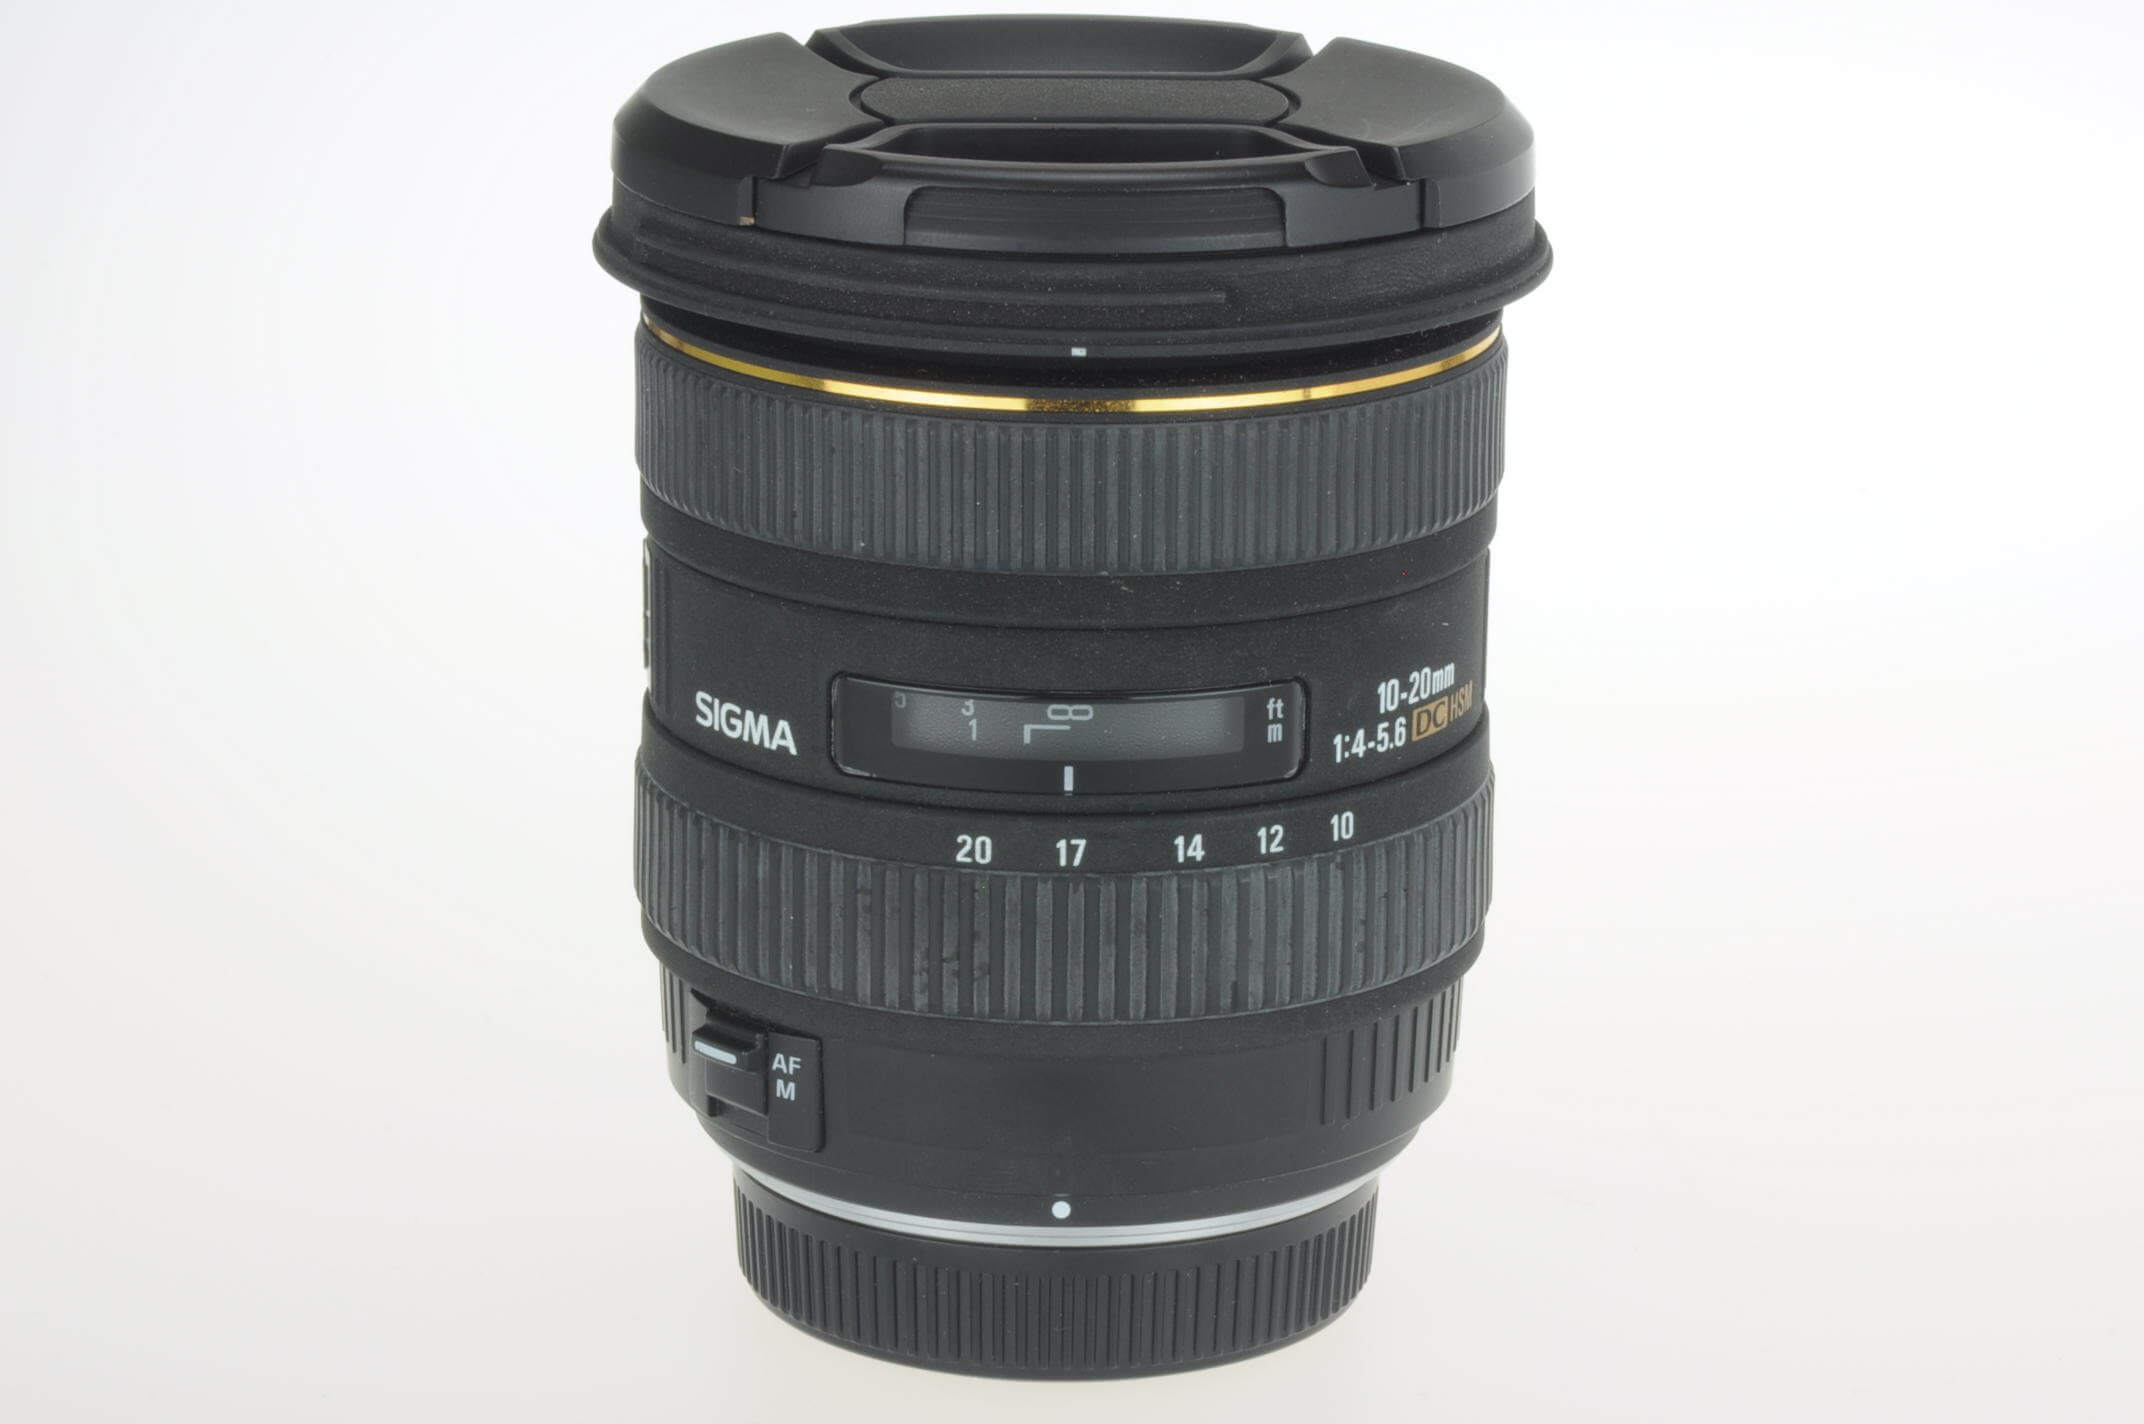 Sigma 10-20mm f4-5.6 DC HSM, 4/3 mount, almost mint!